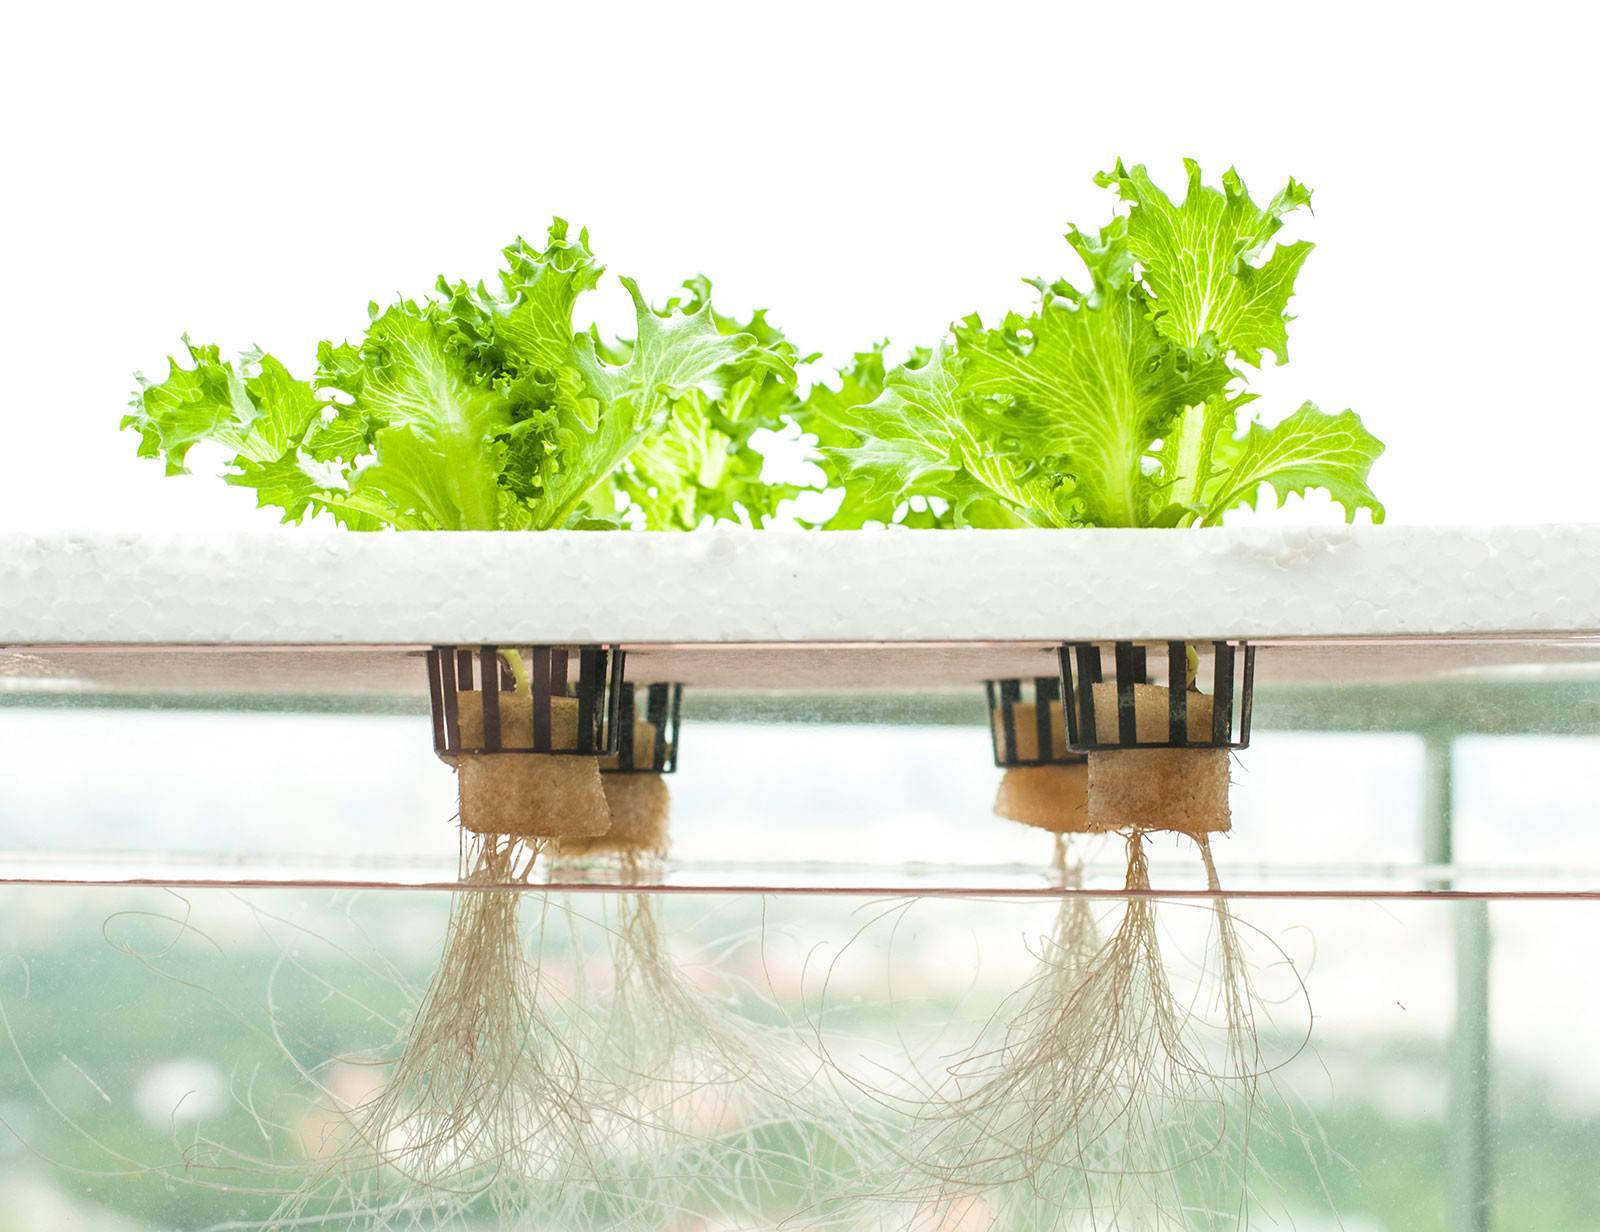 Best Hydroponic Air Pumps for Growth of Your Plants